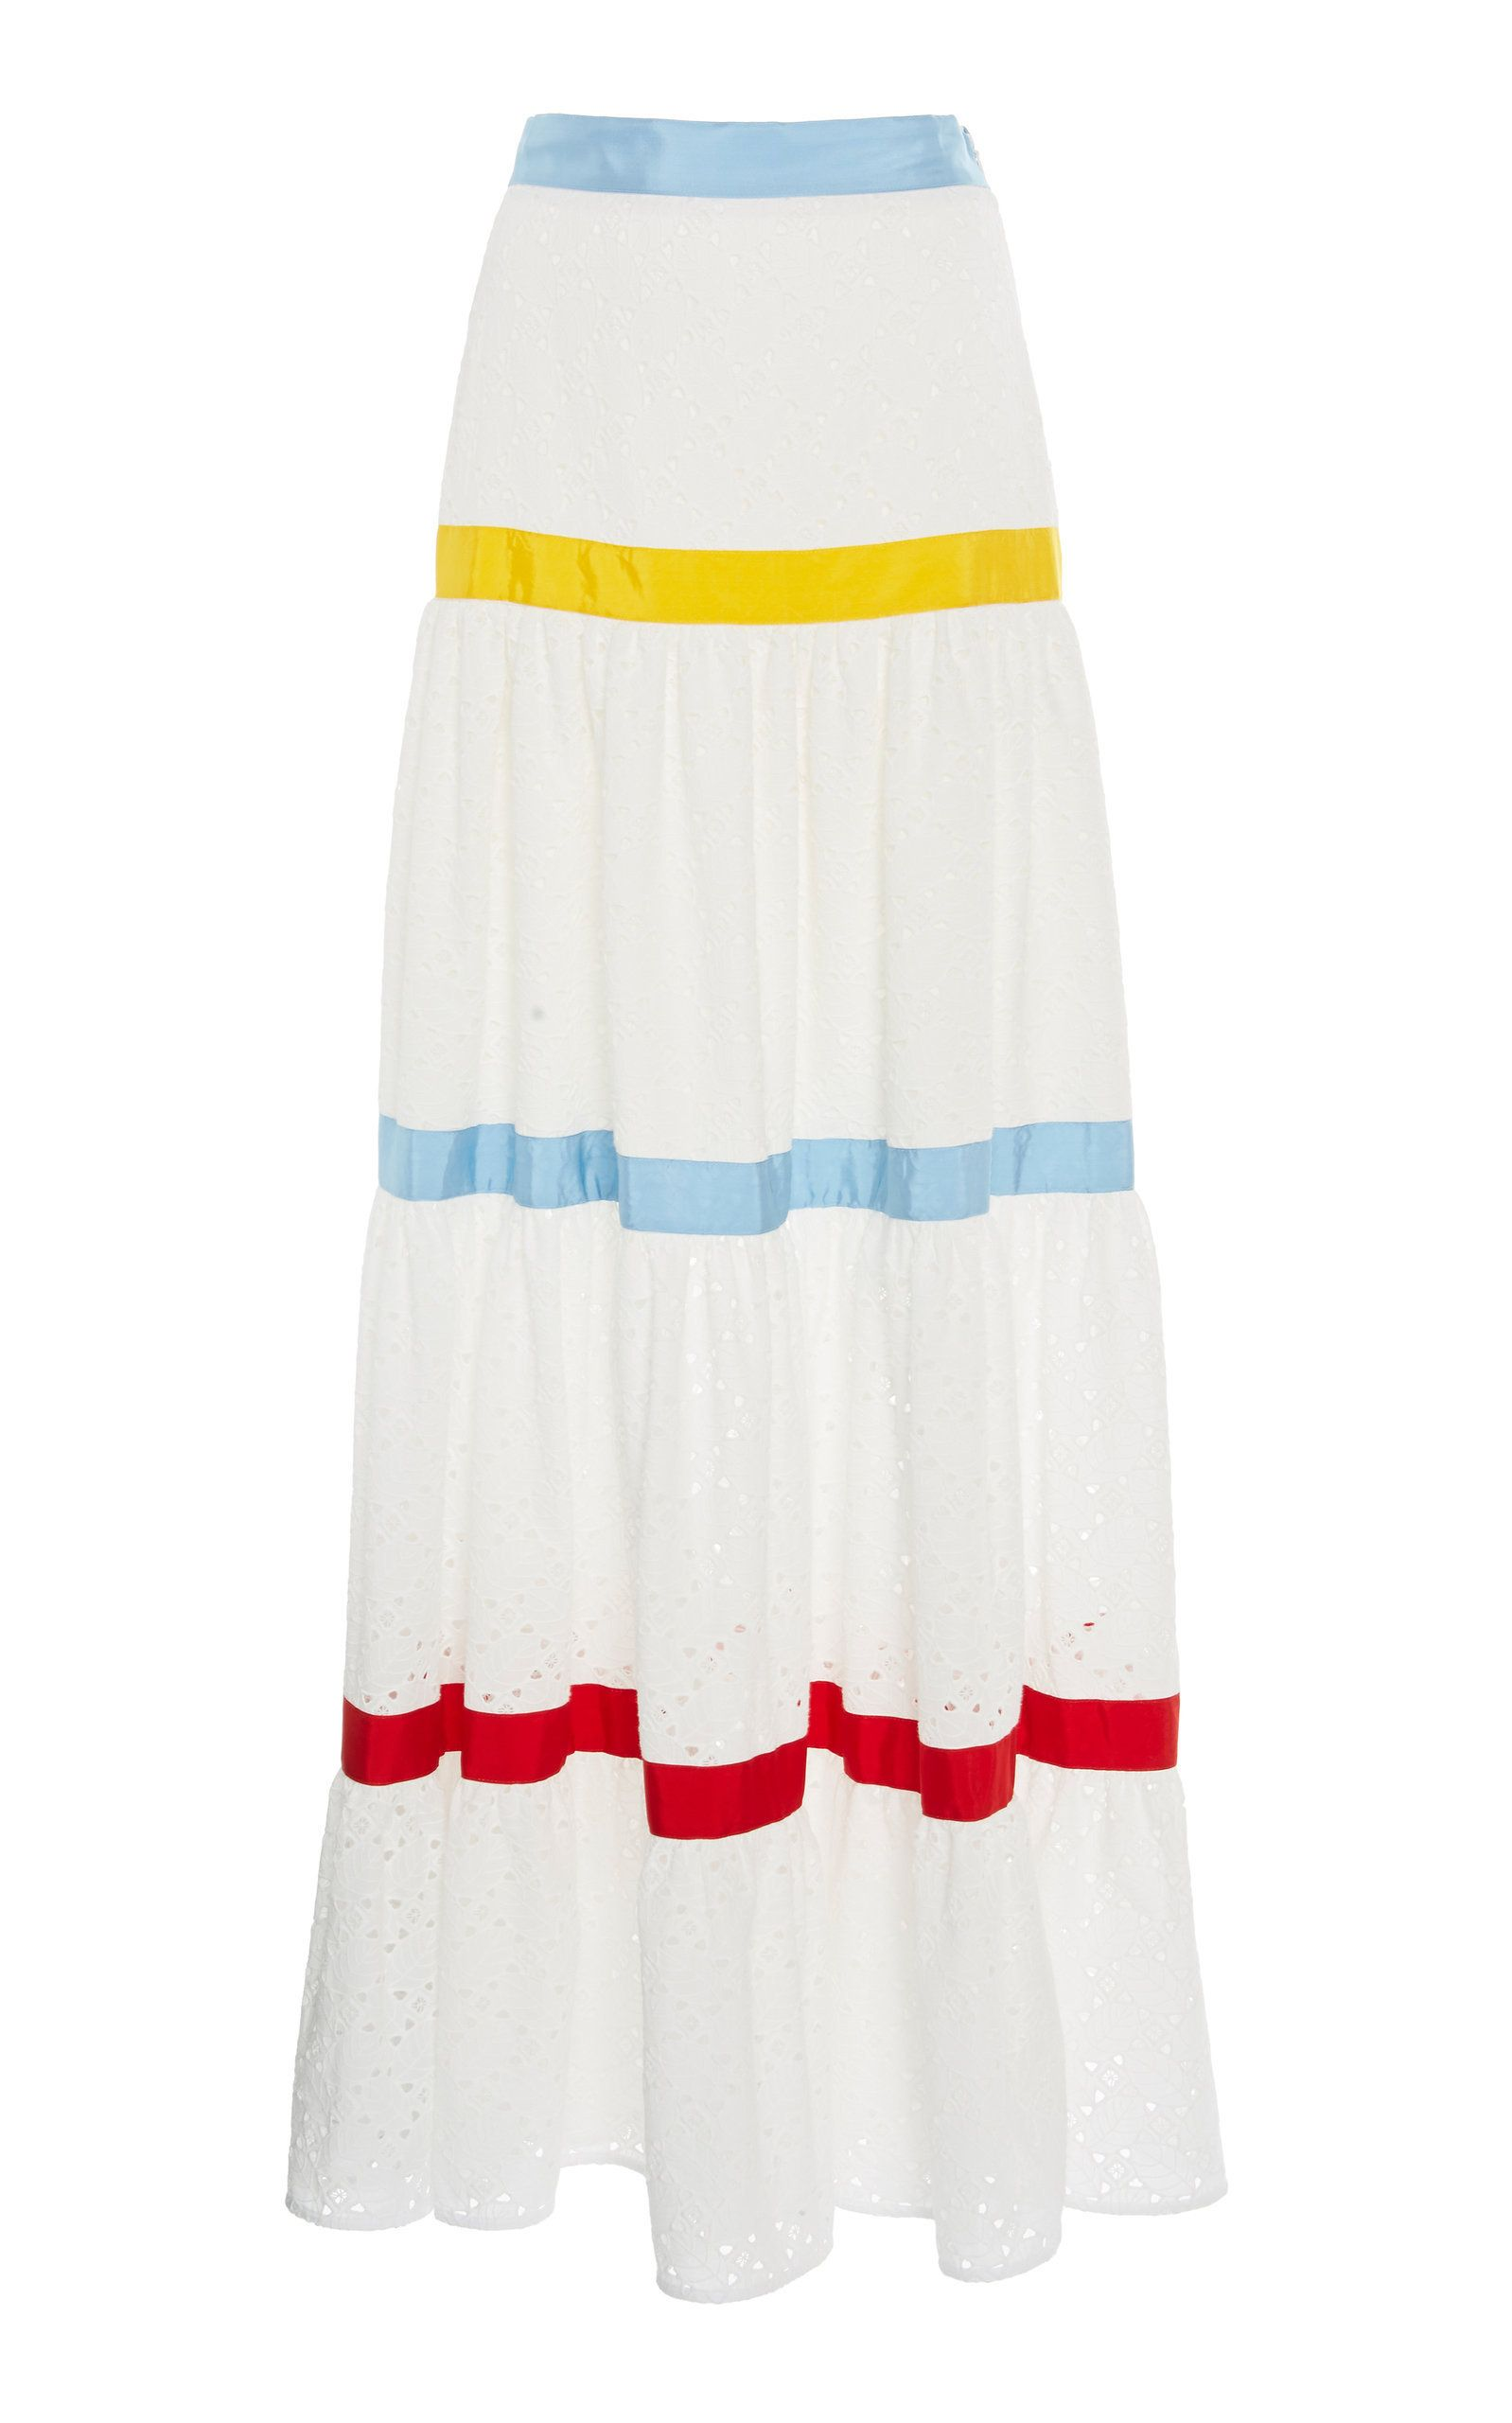 6f513644e9 Click product to zoom Stella Jean, Tiered Skirts, A Line Skirts, Jeans,